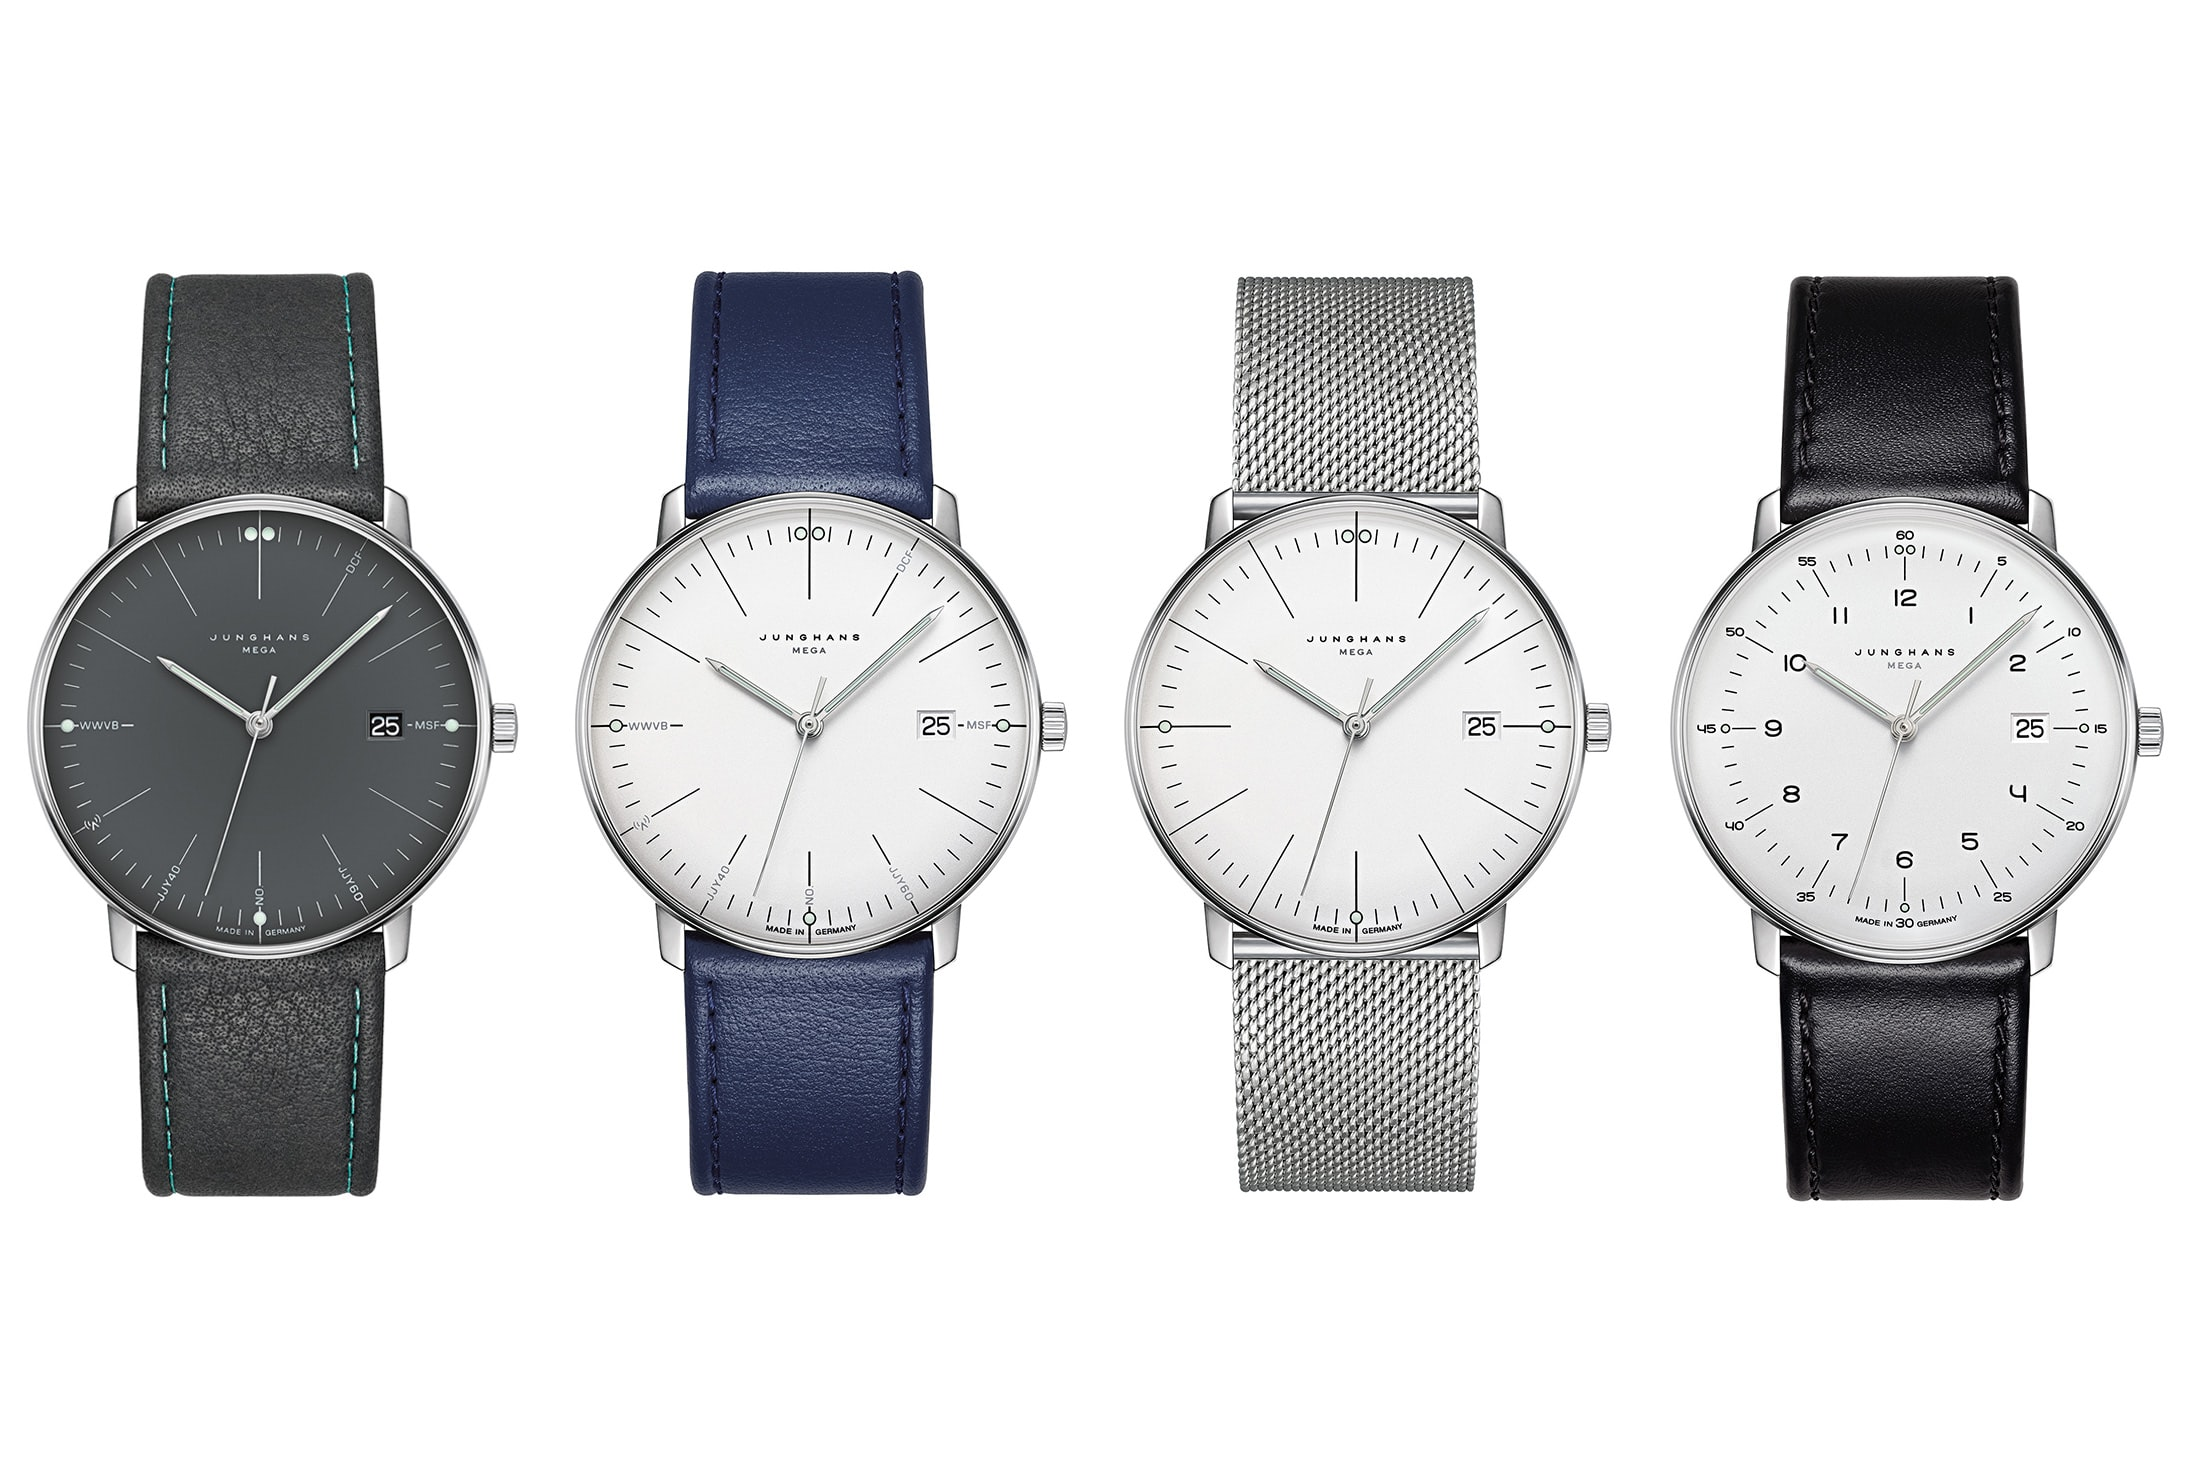 Introducing: The Junghans Max Bill Mega junghans max bill mega 5